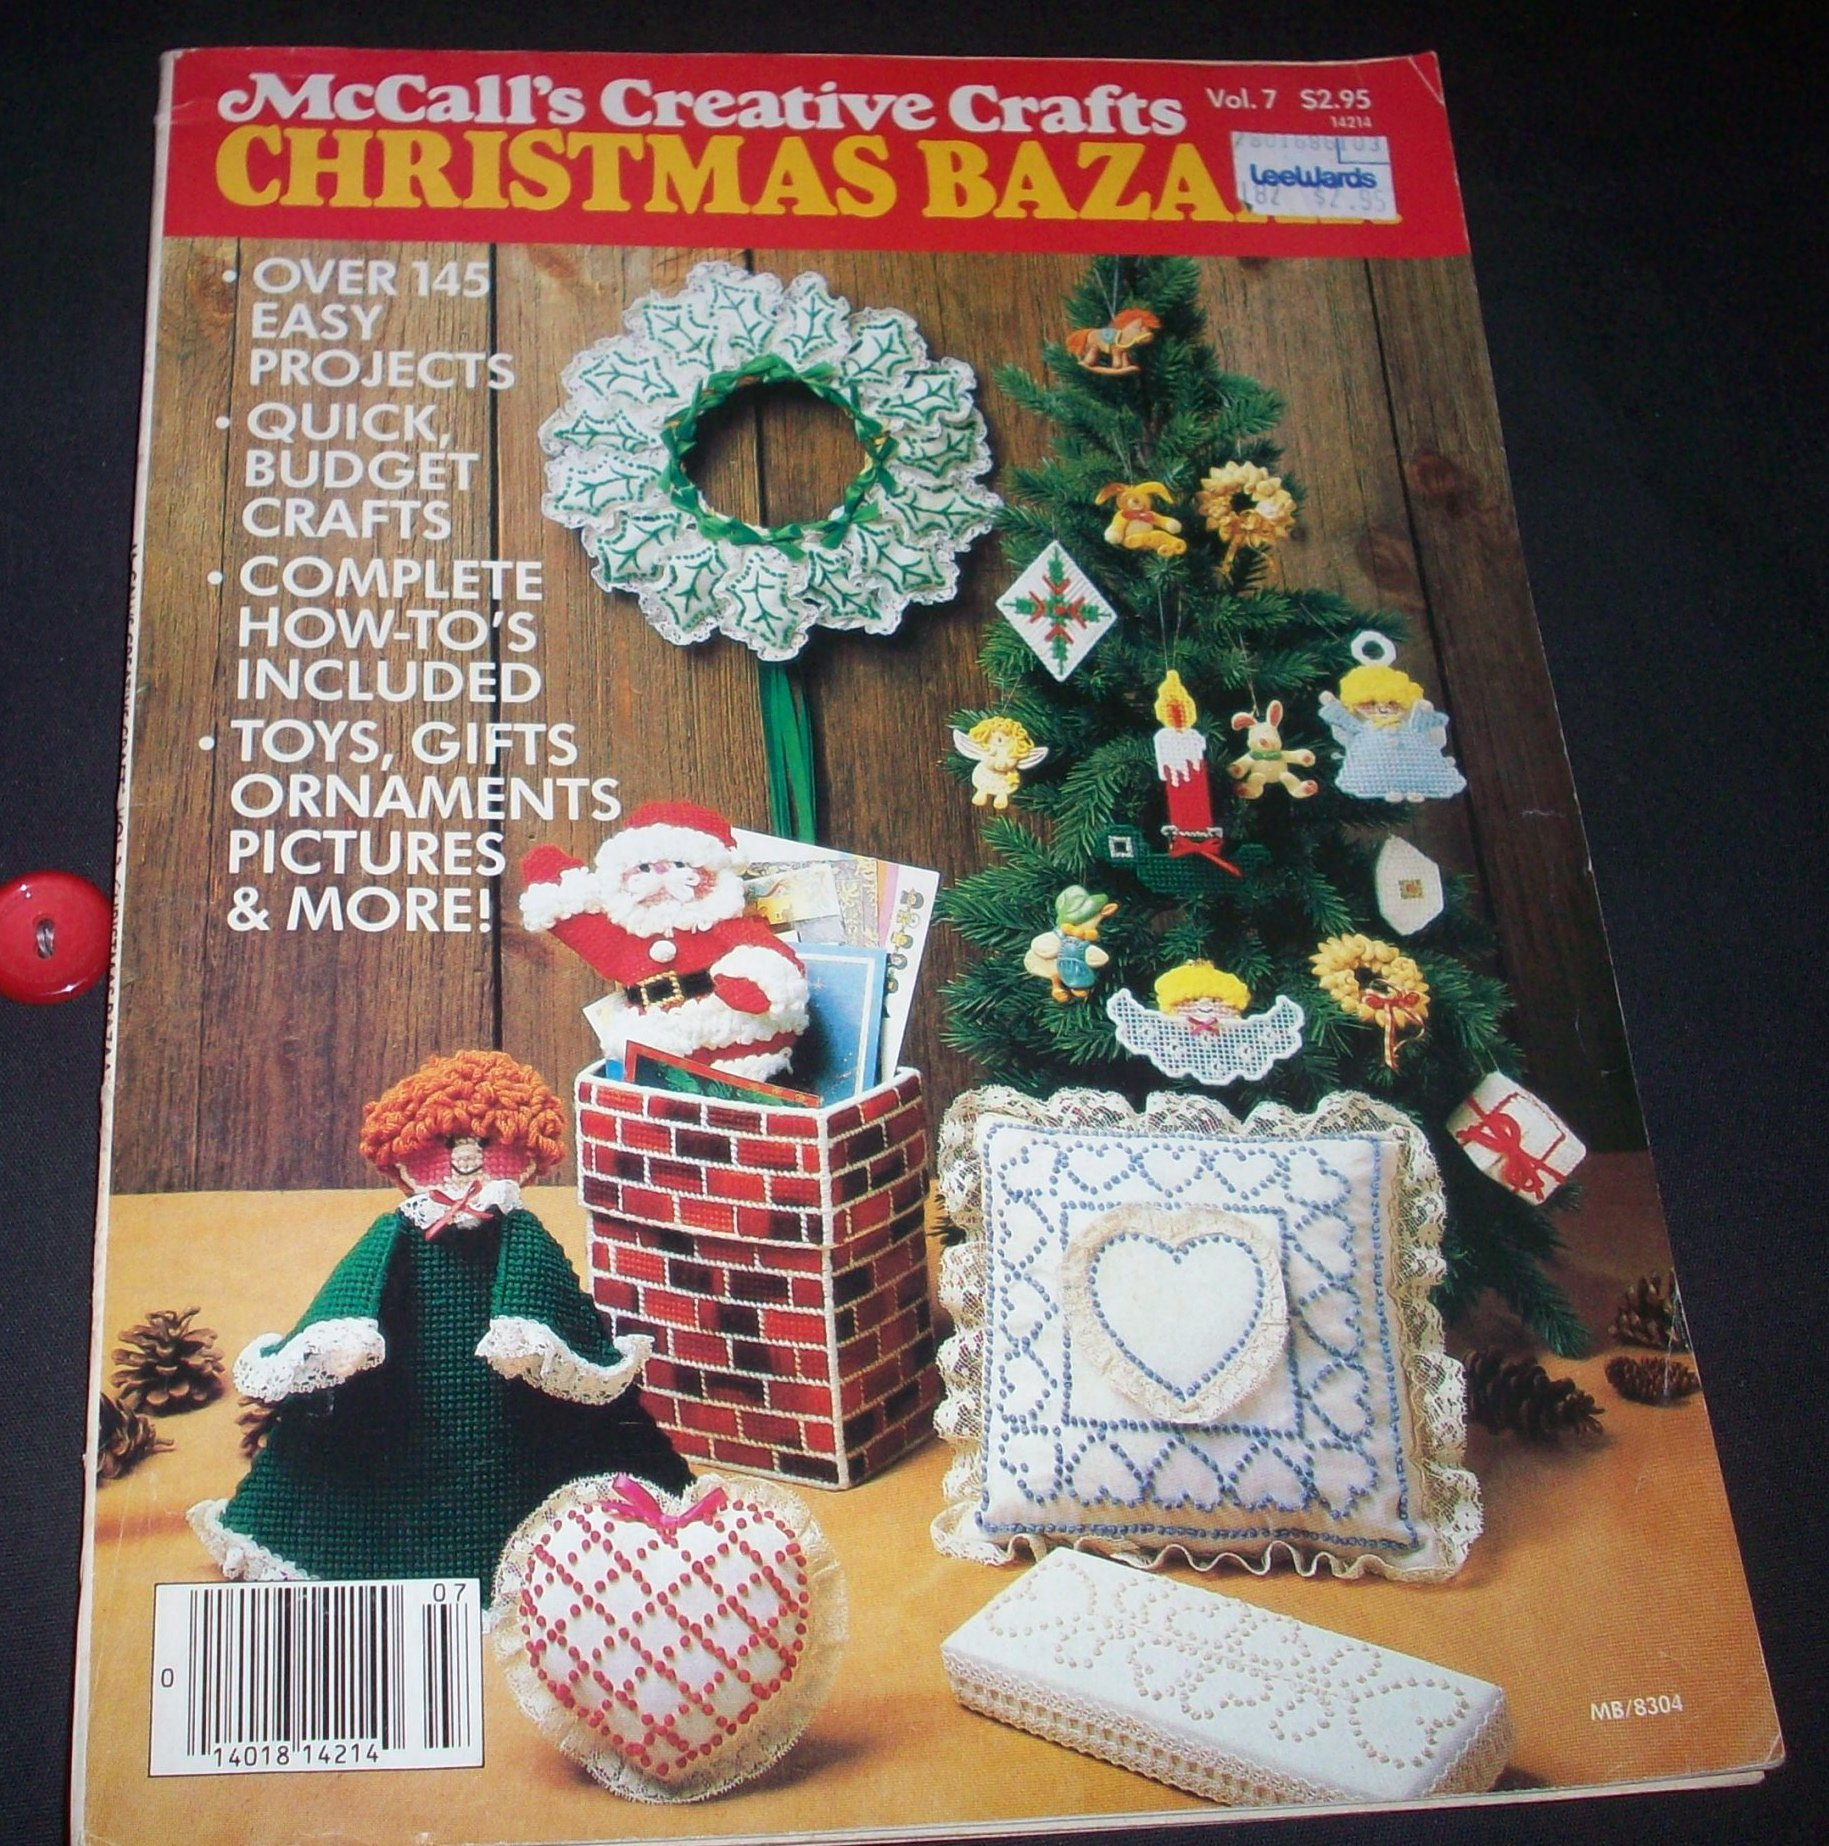 Mccall S Creative Crafts Christmas Bazaar Vol 7 1983 Amazon Com Books